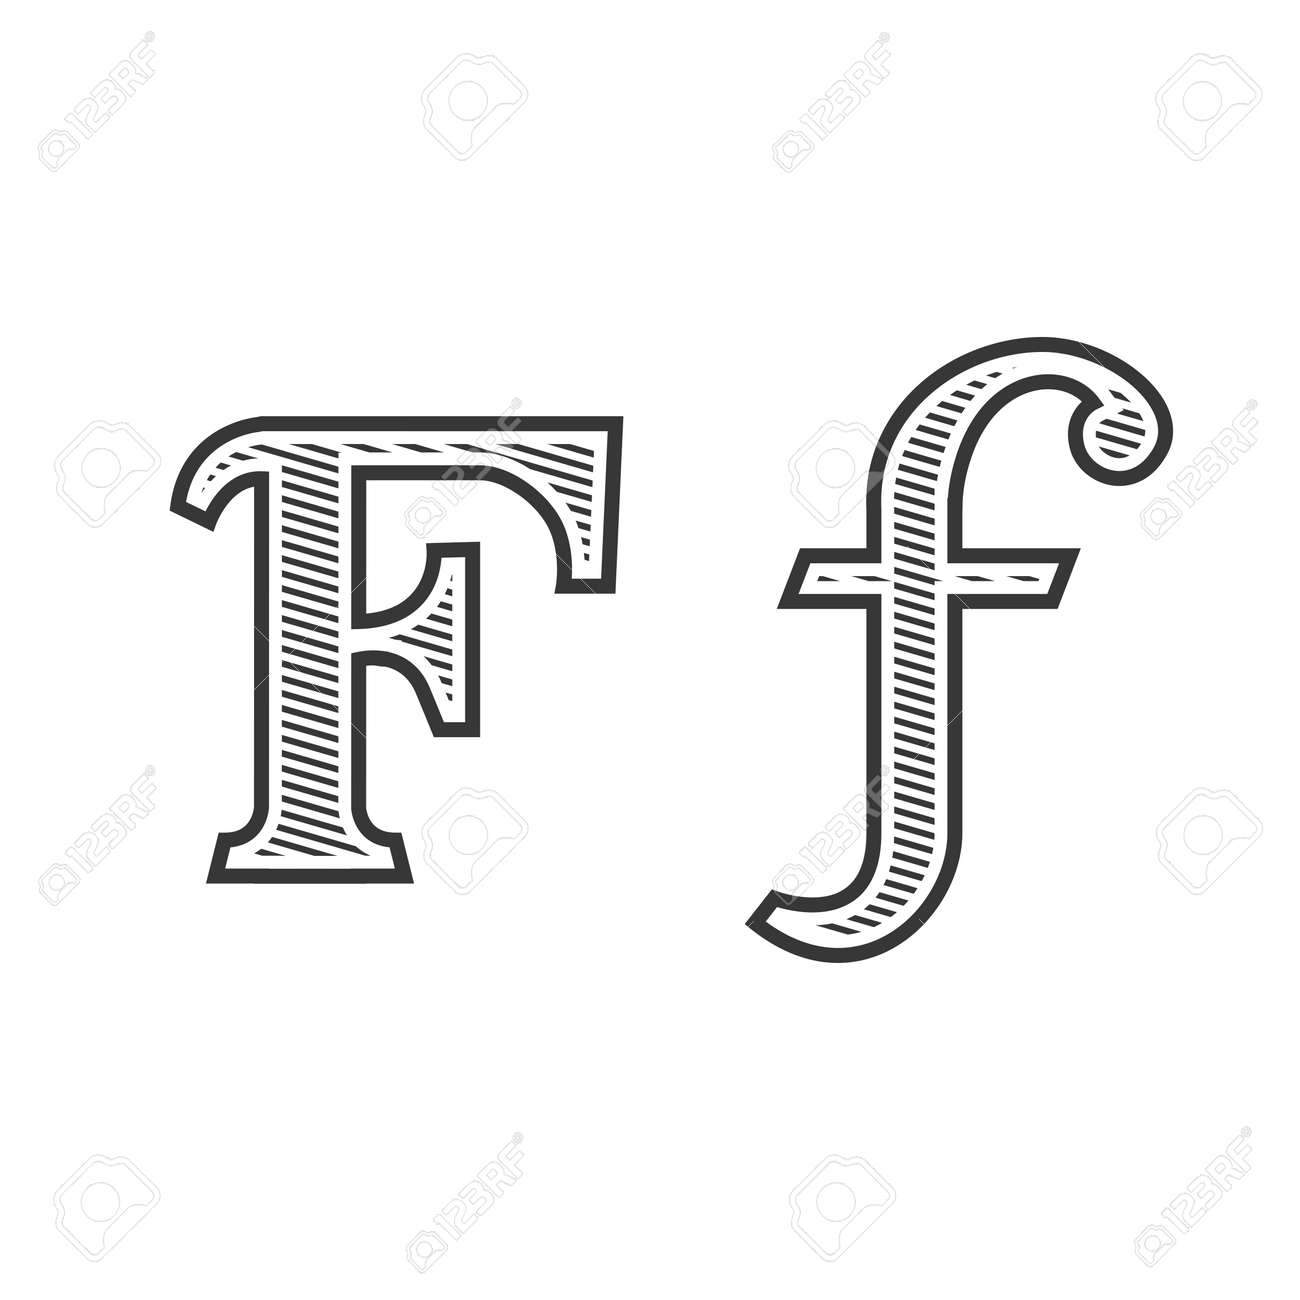 Font Tattoo Engraving Letter F Black And White With Shading Royalty